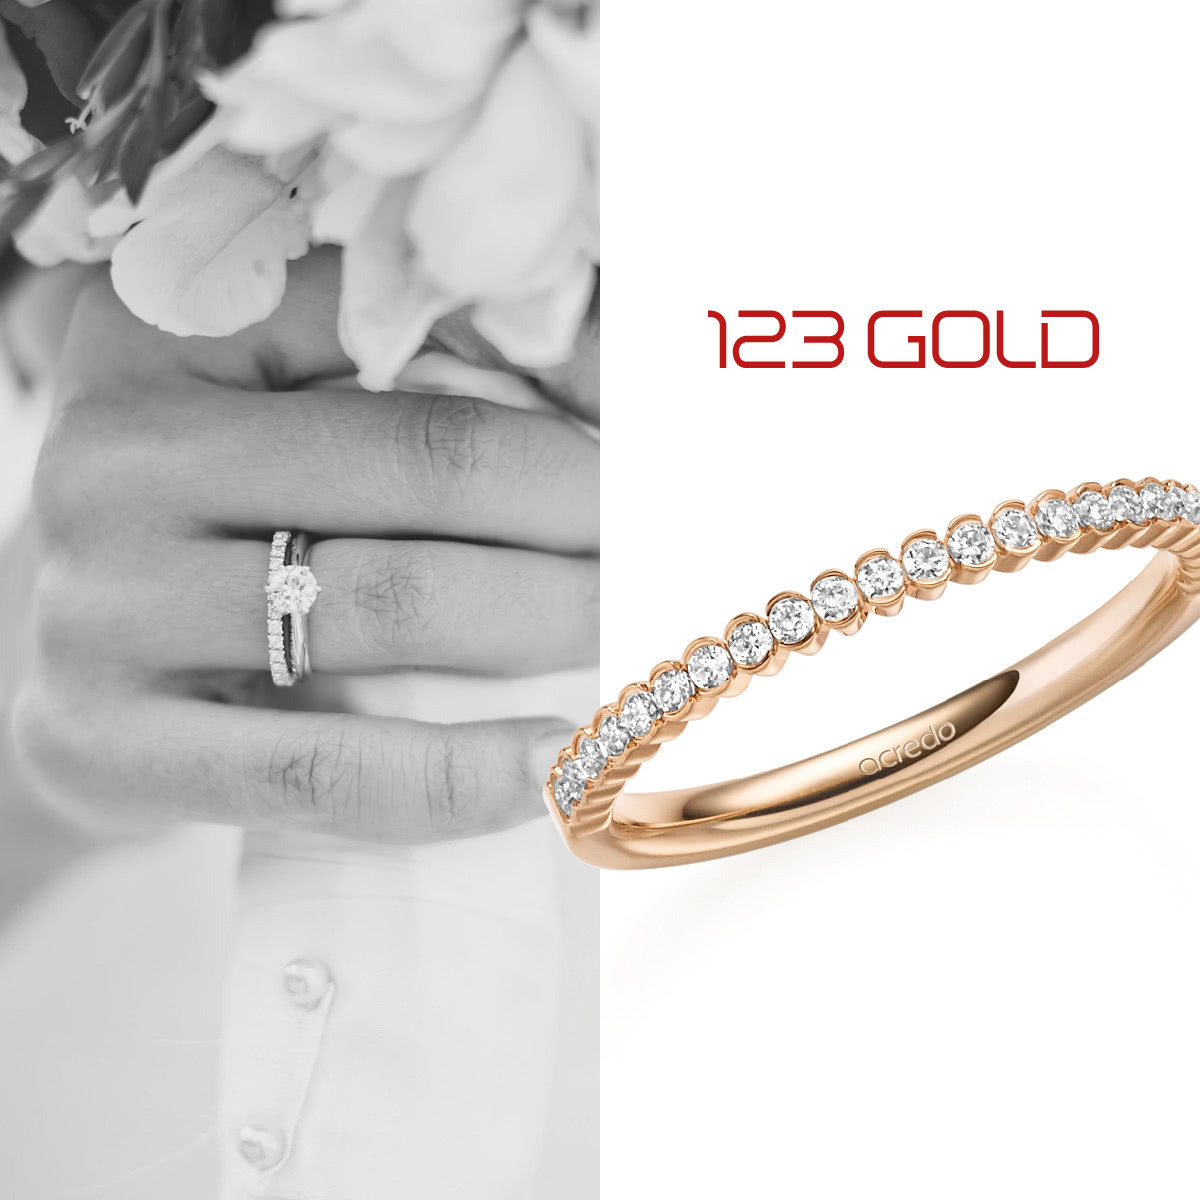 Memoire-Ring | Trauringe/eheringe 123Gold | Ihr Trauring